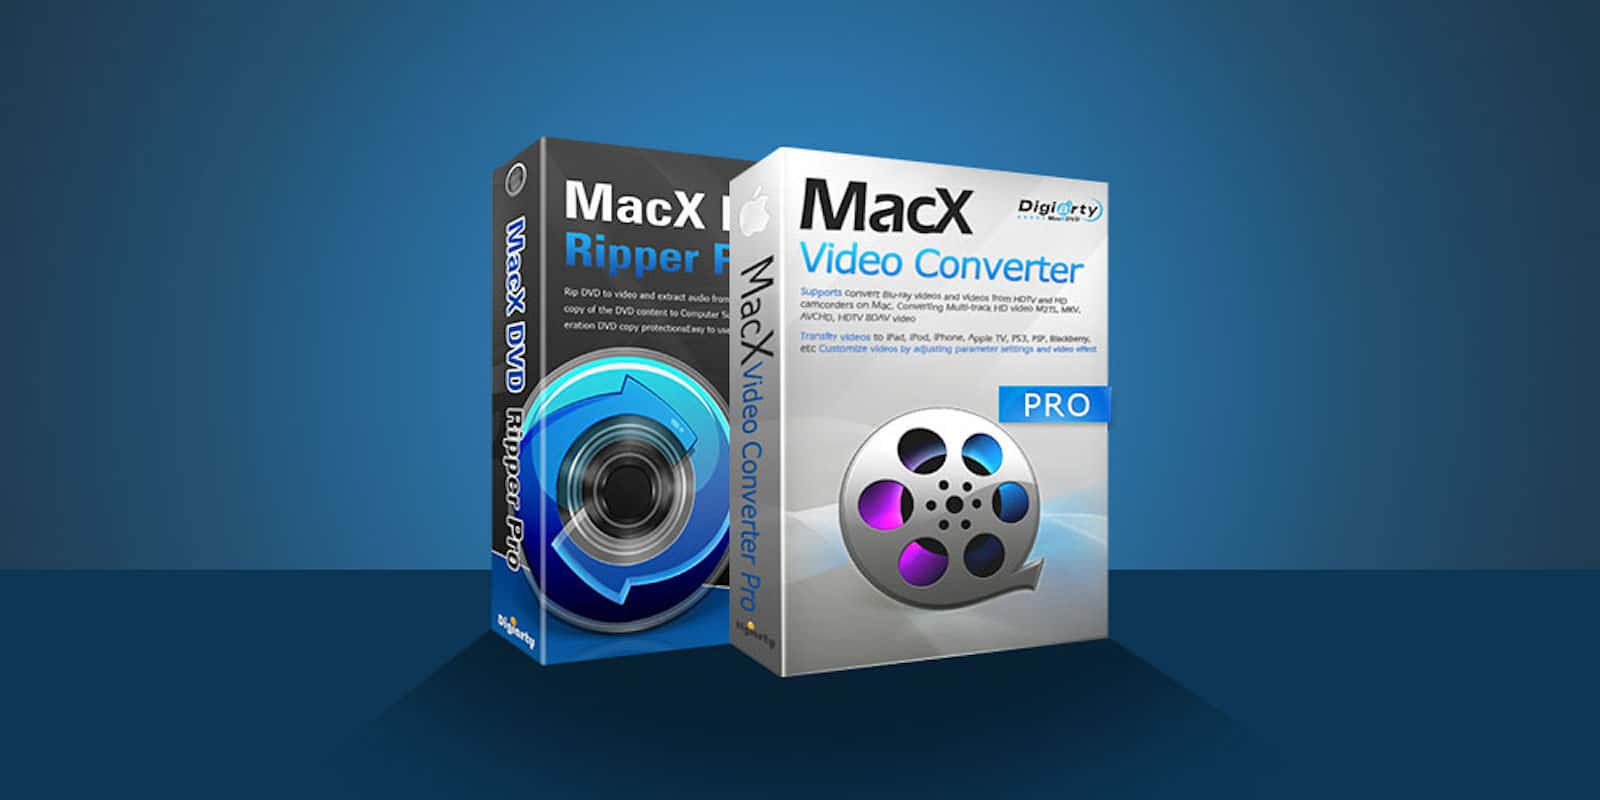 Master your media collection with lifetime access to DVD ripping and video conversion software.